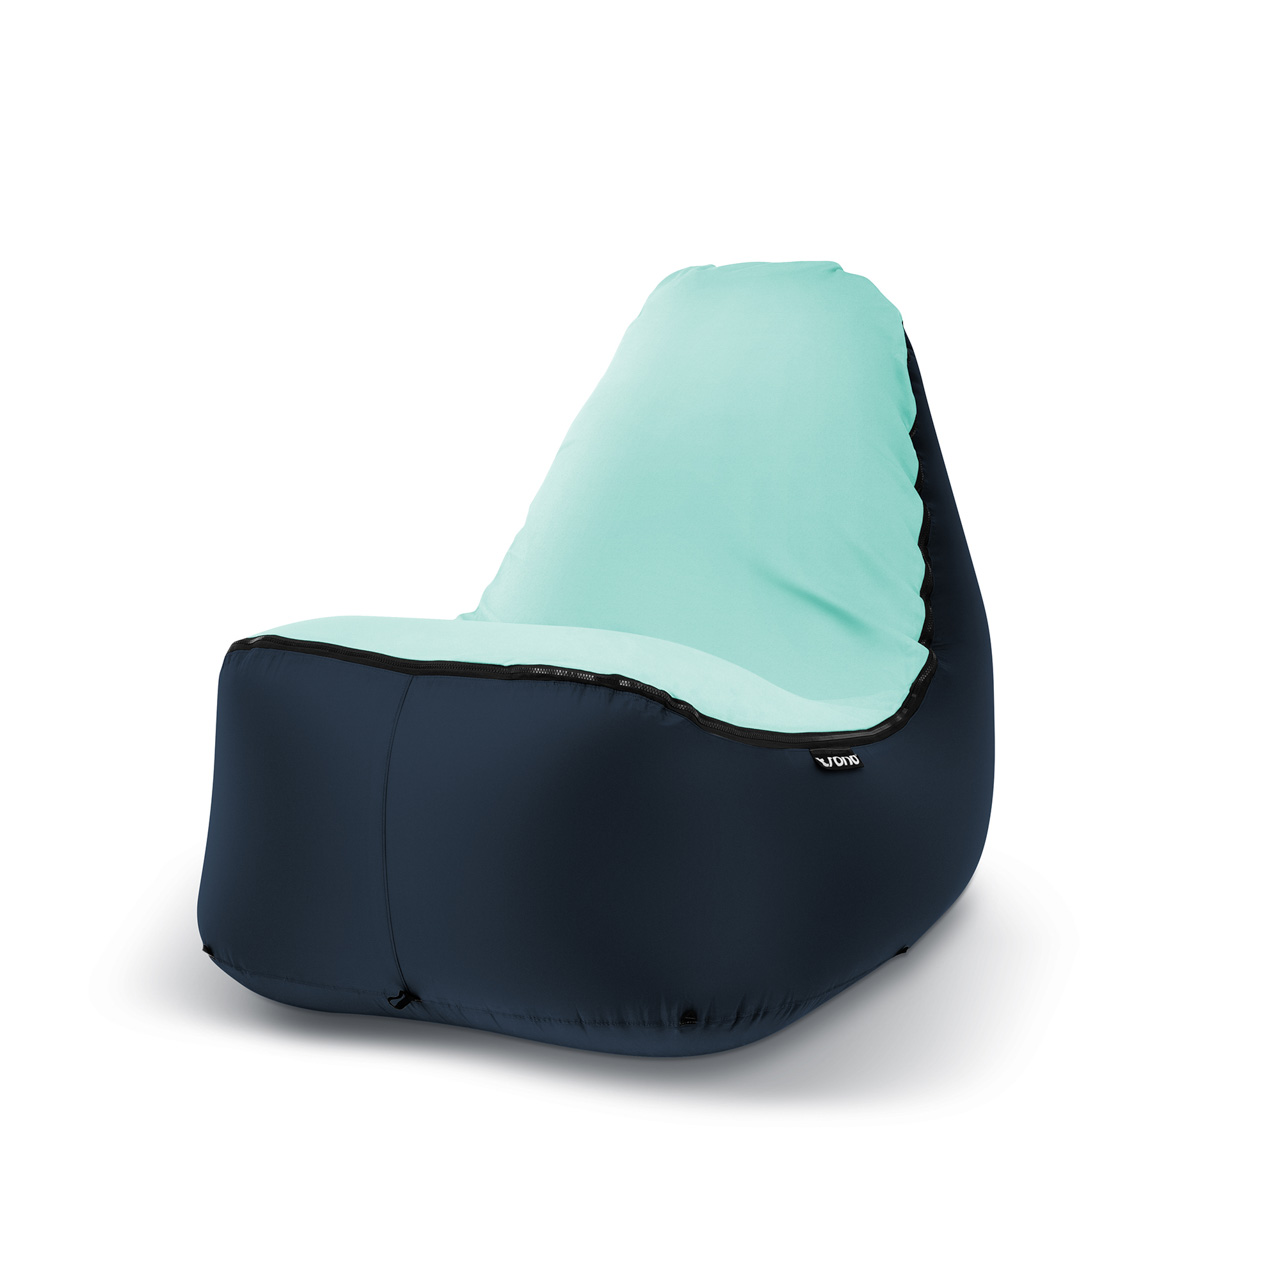 Sitzsack Outdoor Dunkelblau Helltürkis Chair Produkte Trono Global